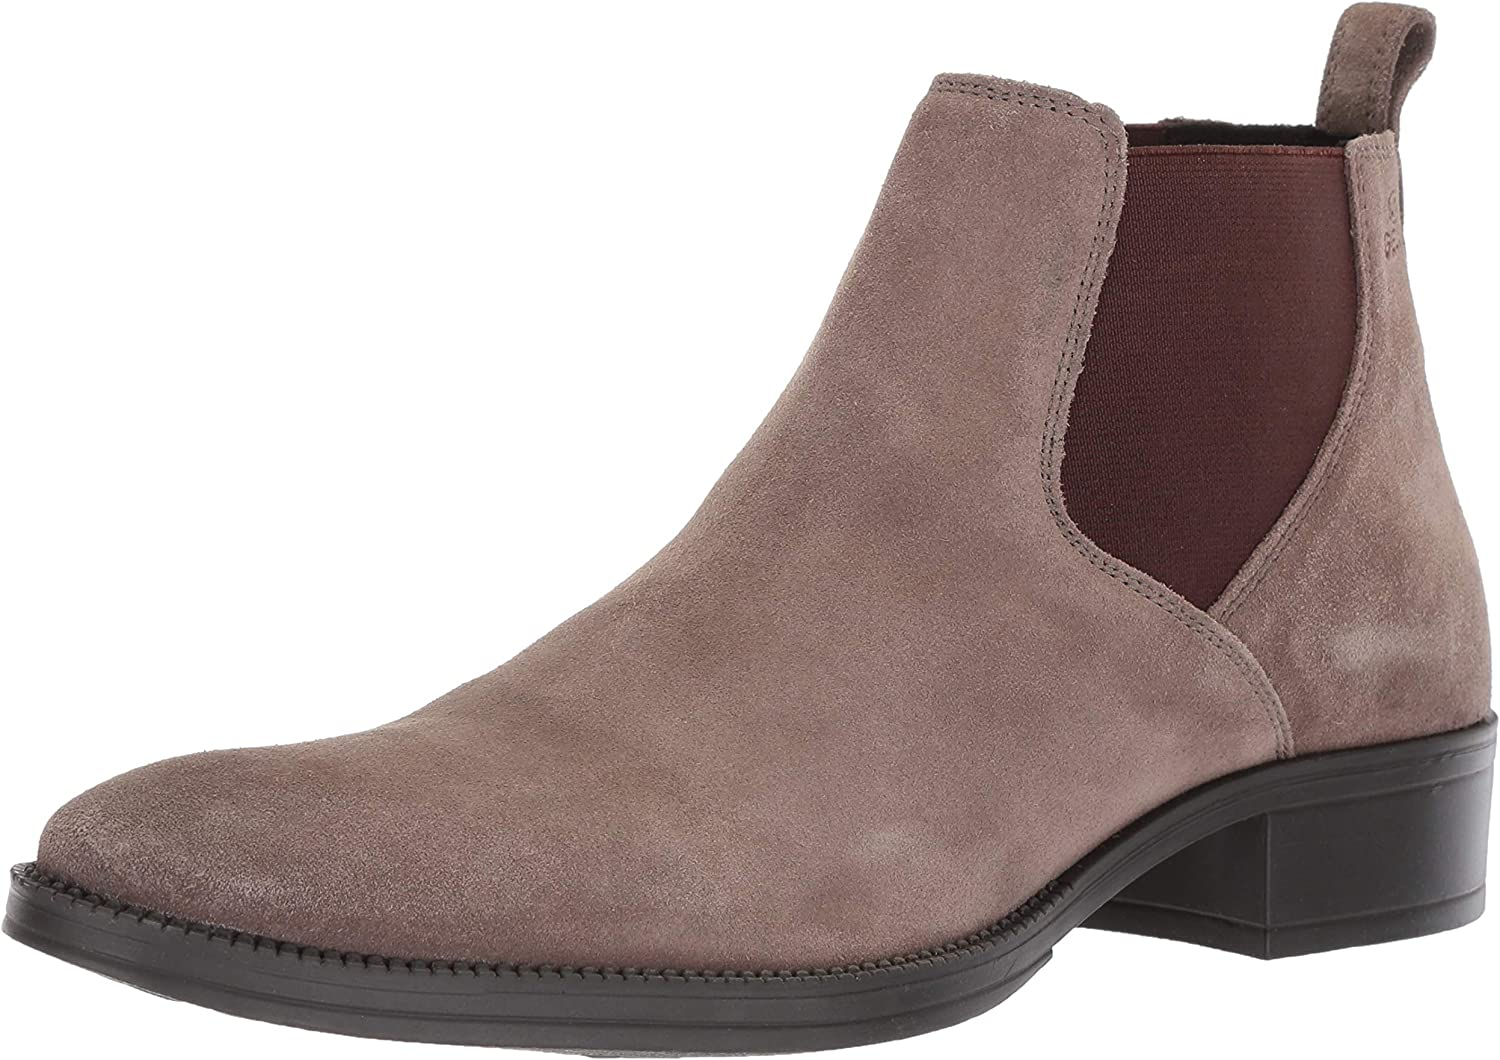 Geox Womens Laceyin Suede Chelsea Boot Ankle Boot